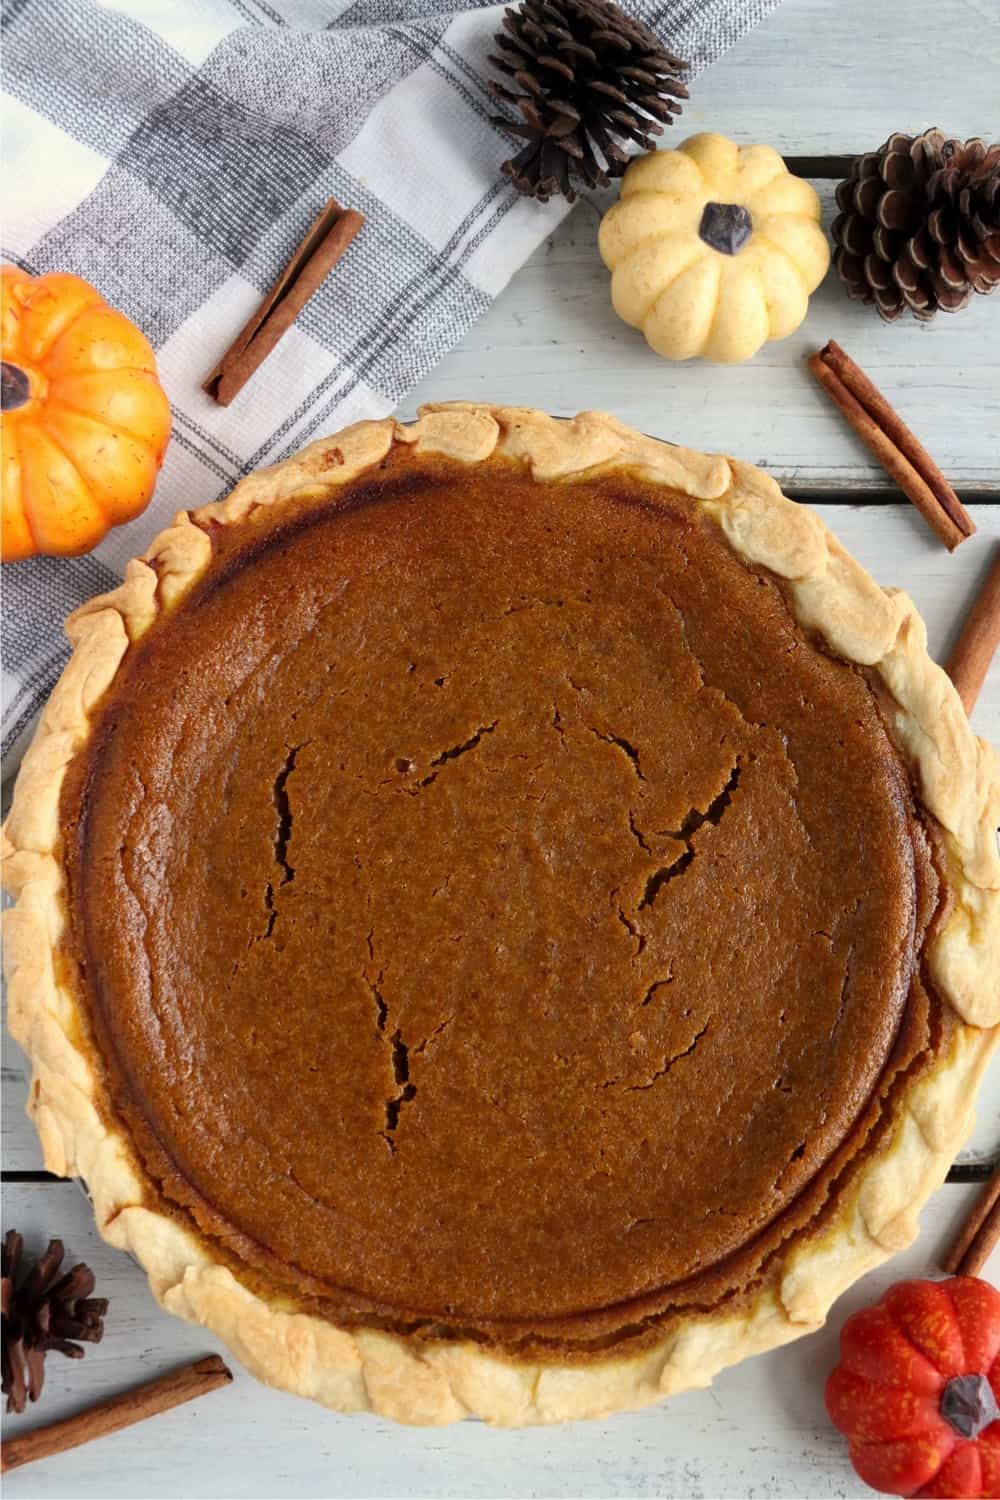 A full pumpkin pie surrounded by pine cones, pumpkins, and cinnamon sticks.